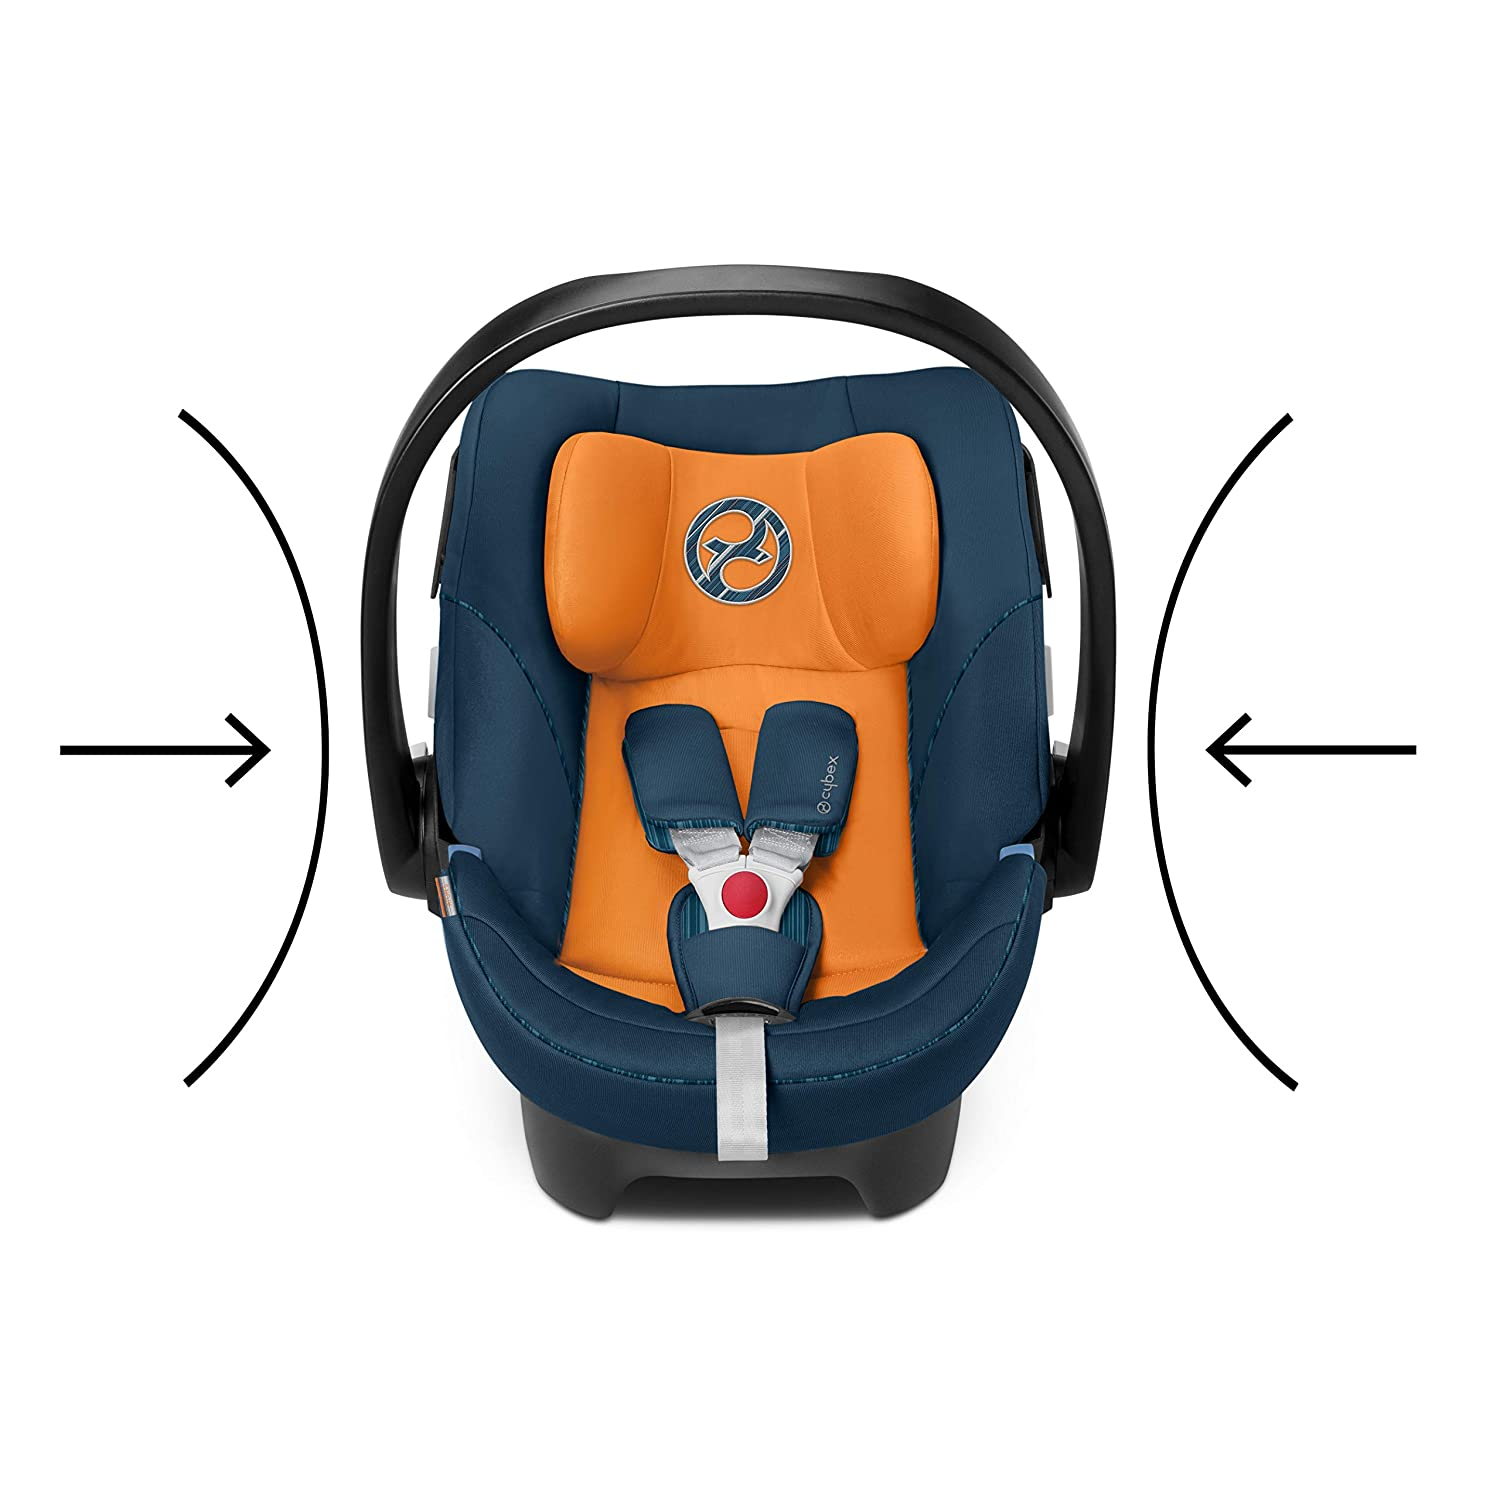 Incl CYBEX Gold Baby Car Seat Aton 5 13 kg Max Newborn Insert 18 months Birth to Approx navy blue